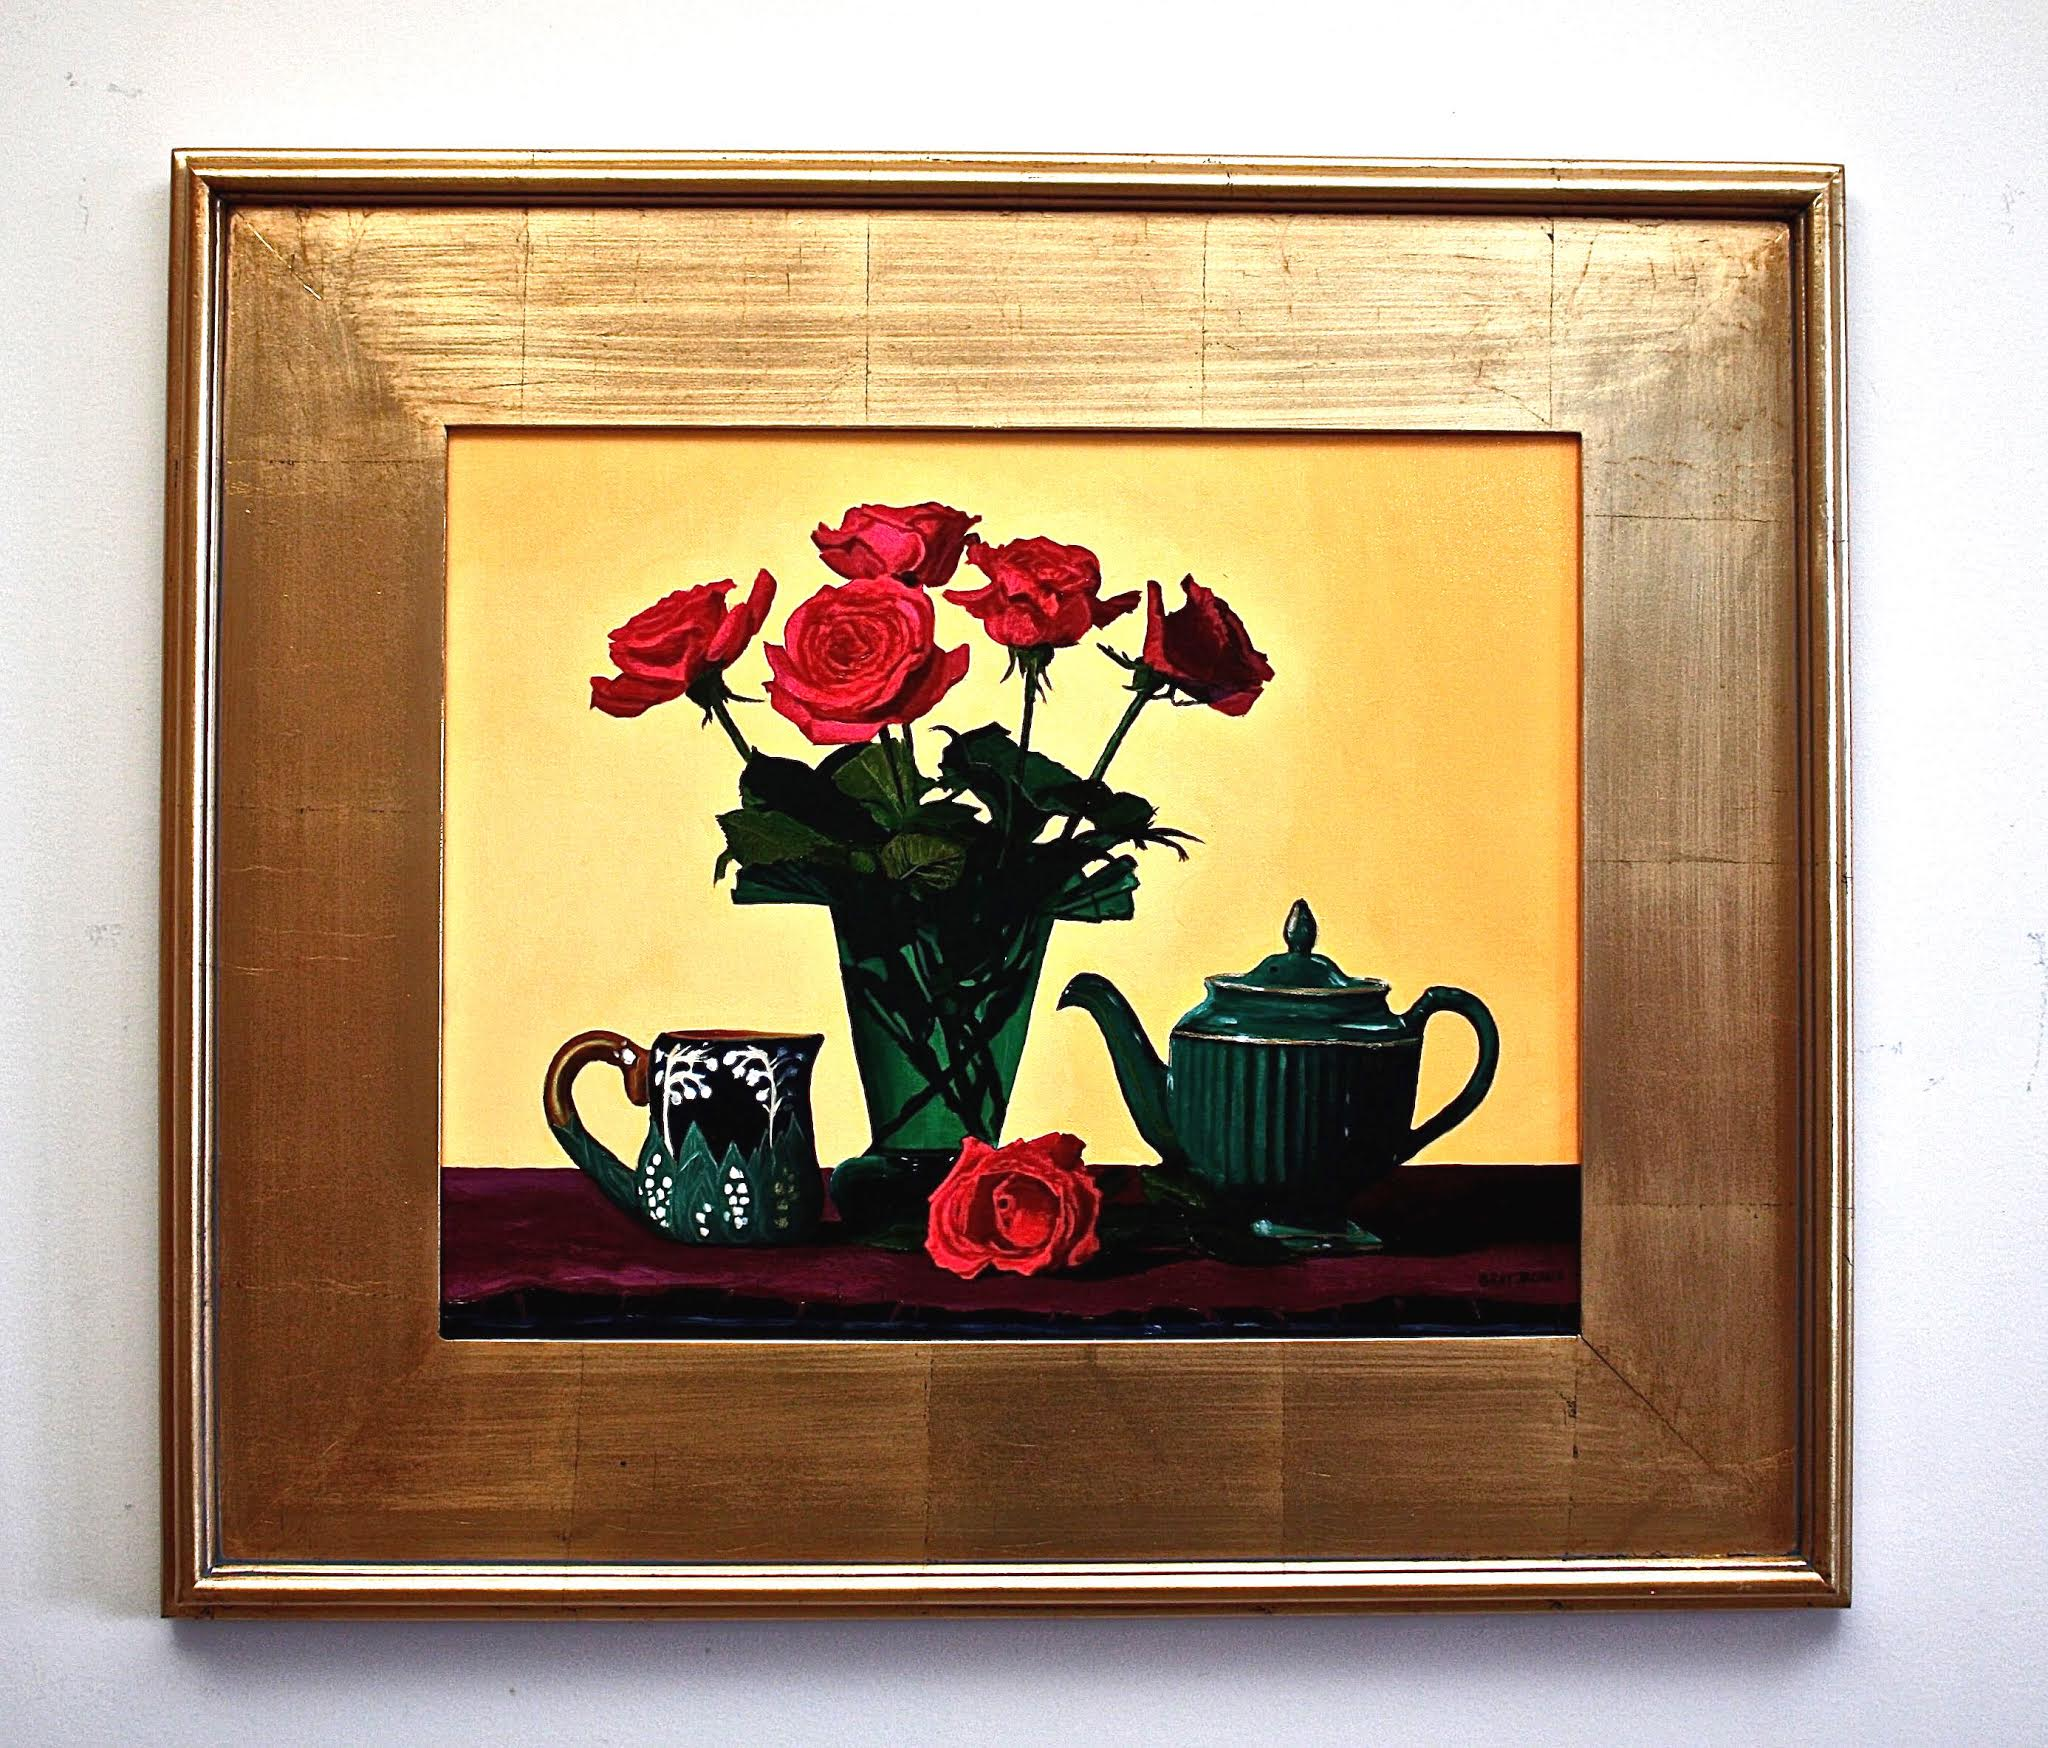 Tea Roses, oil painting by Gray Jacobik